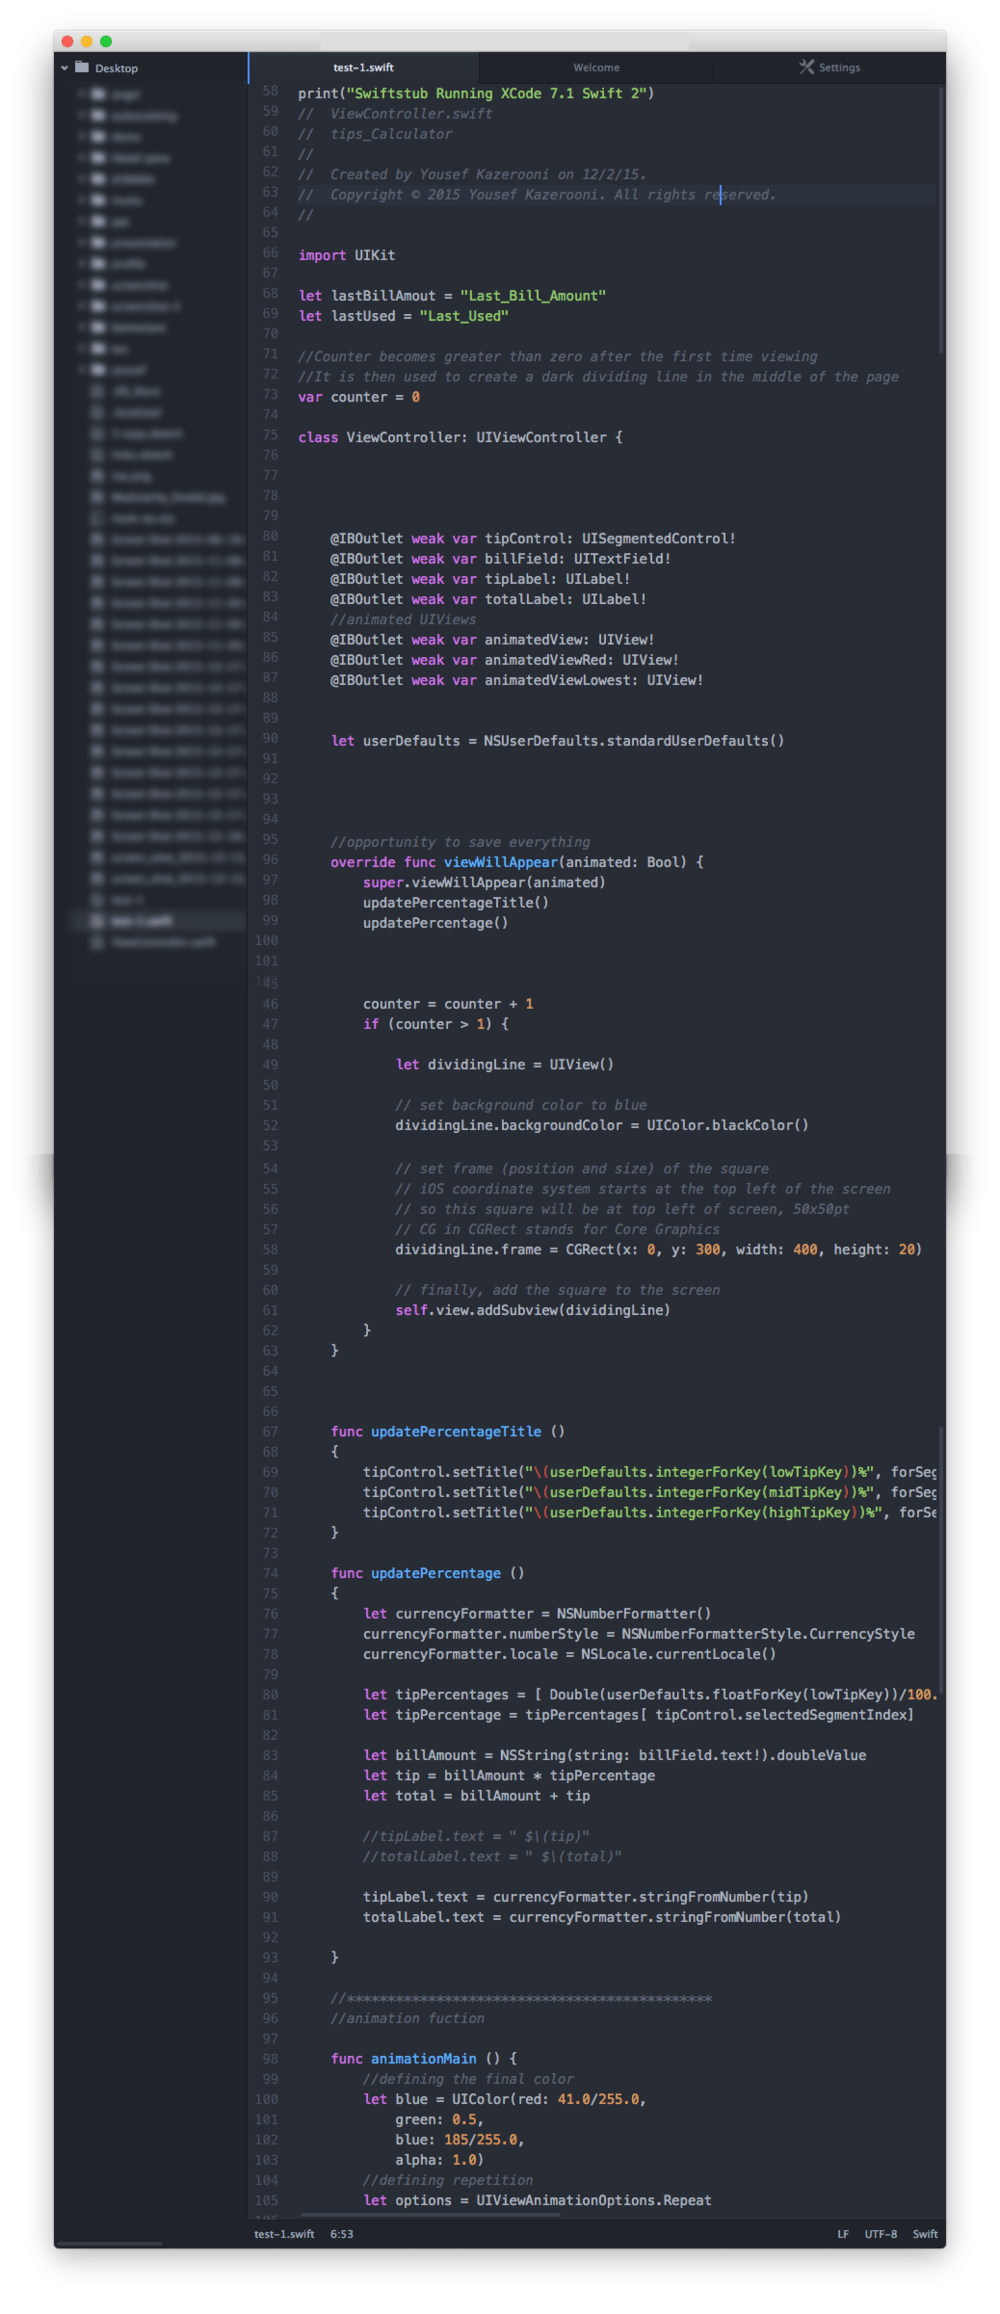 code-small.png